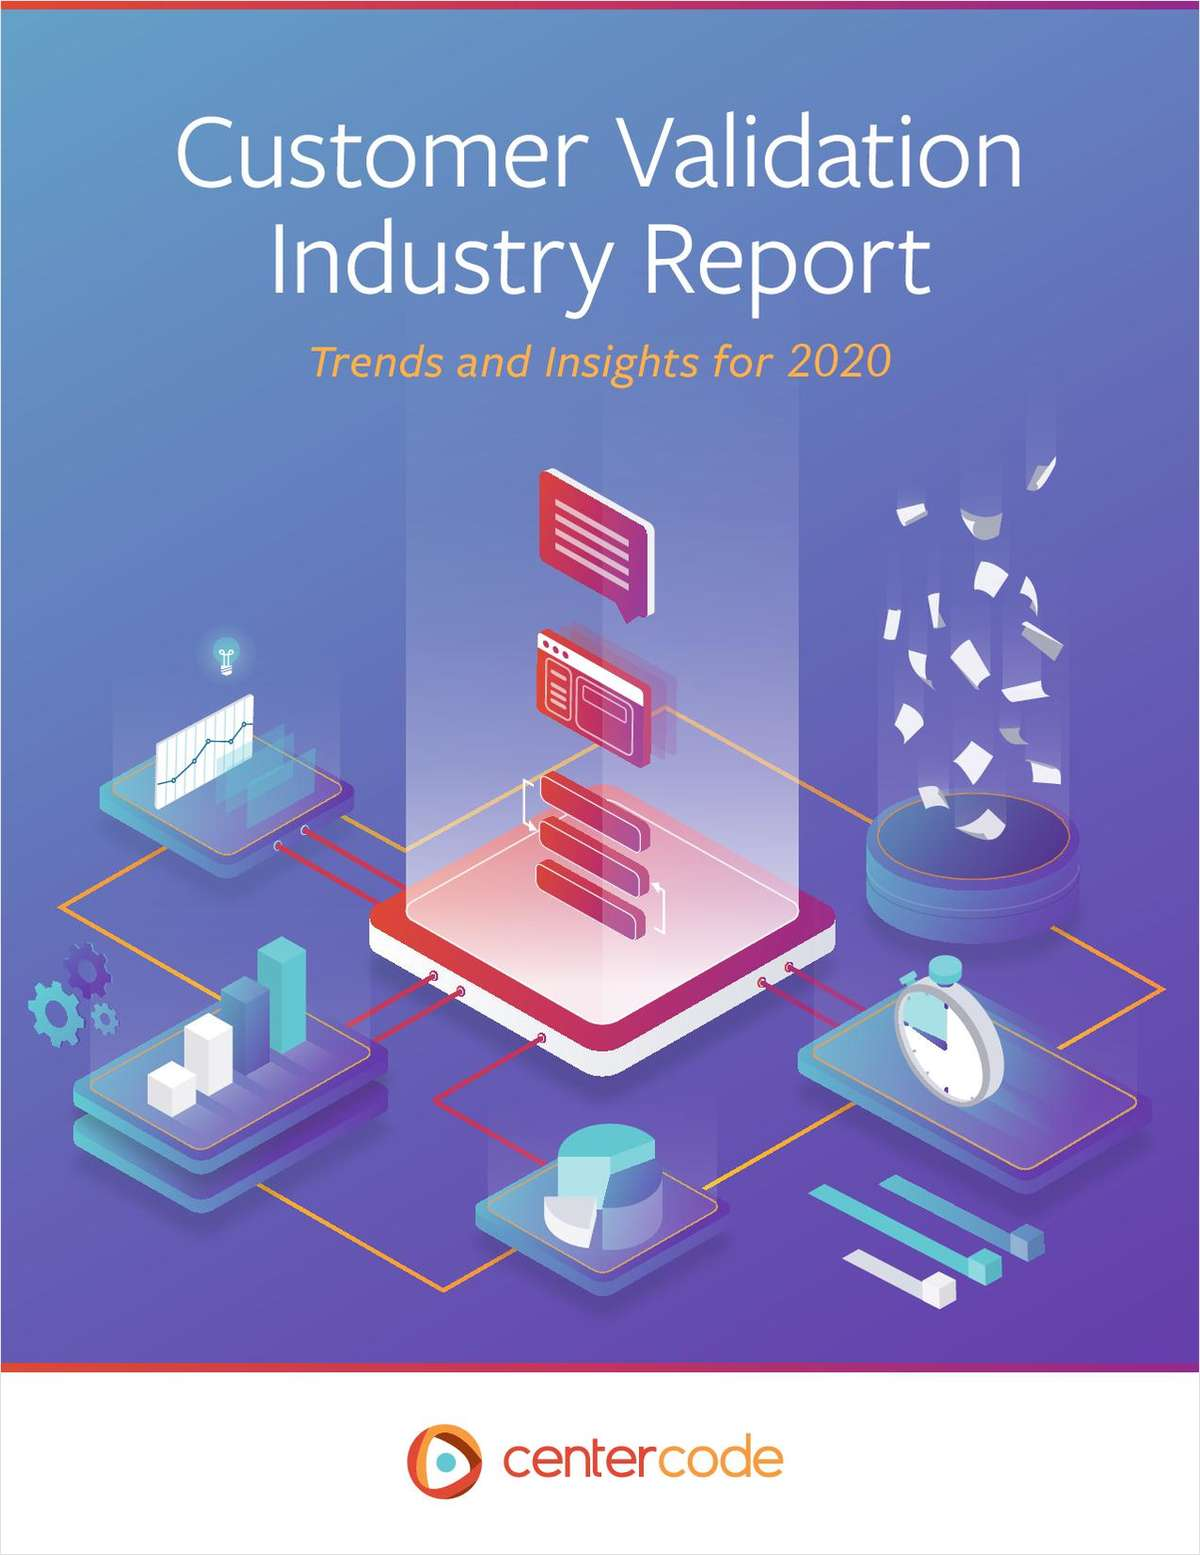 Customer Validation Industry Report: Trends and Insights for 2020